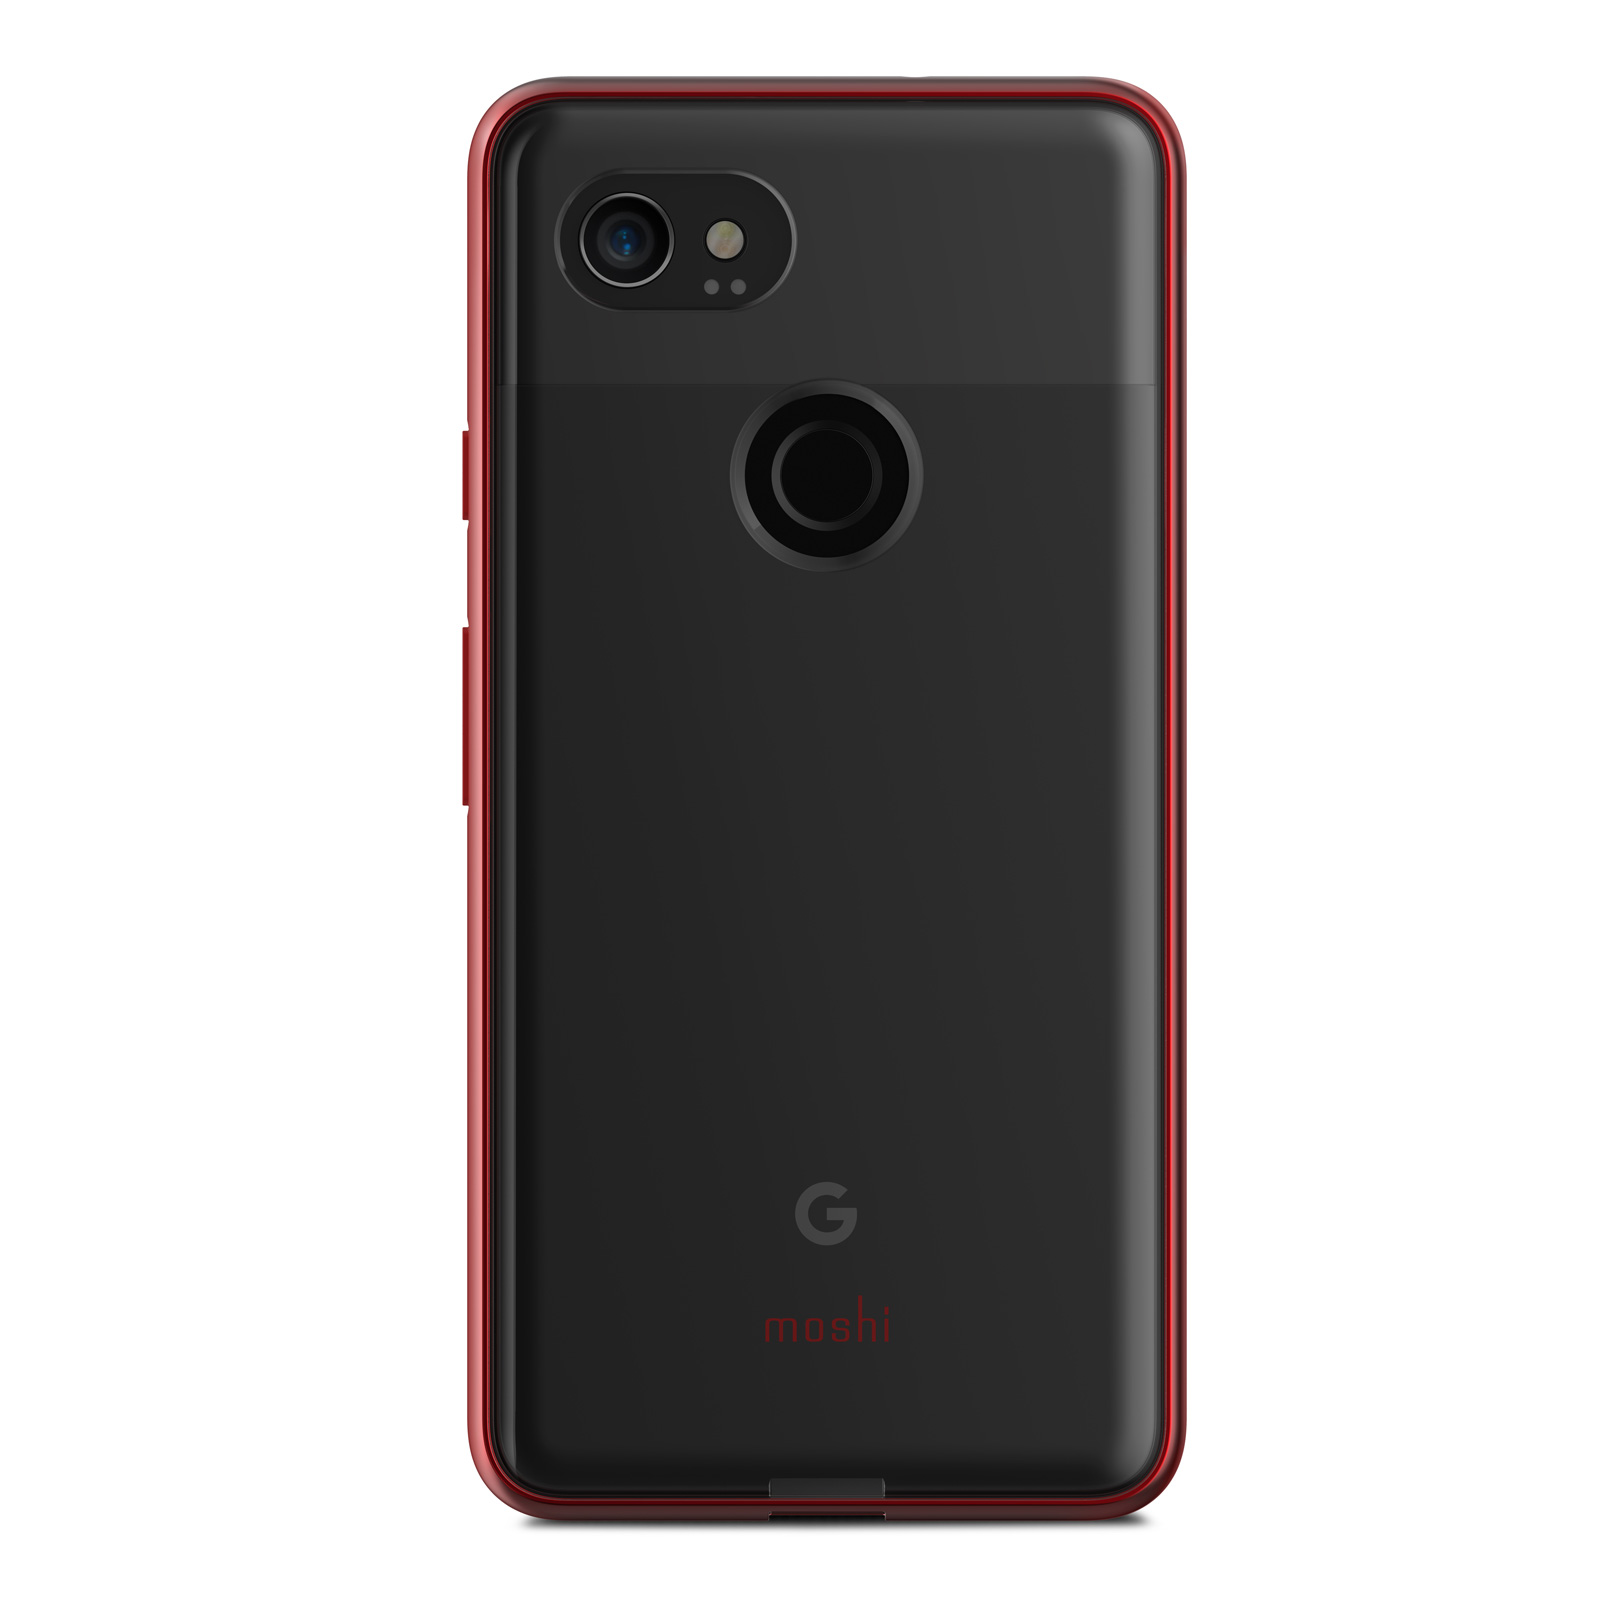 reputable site 368bf 66fc2 Vitros for Pixel 2 XL